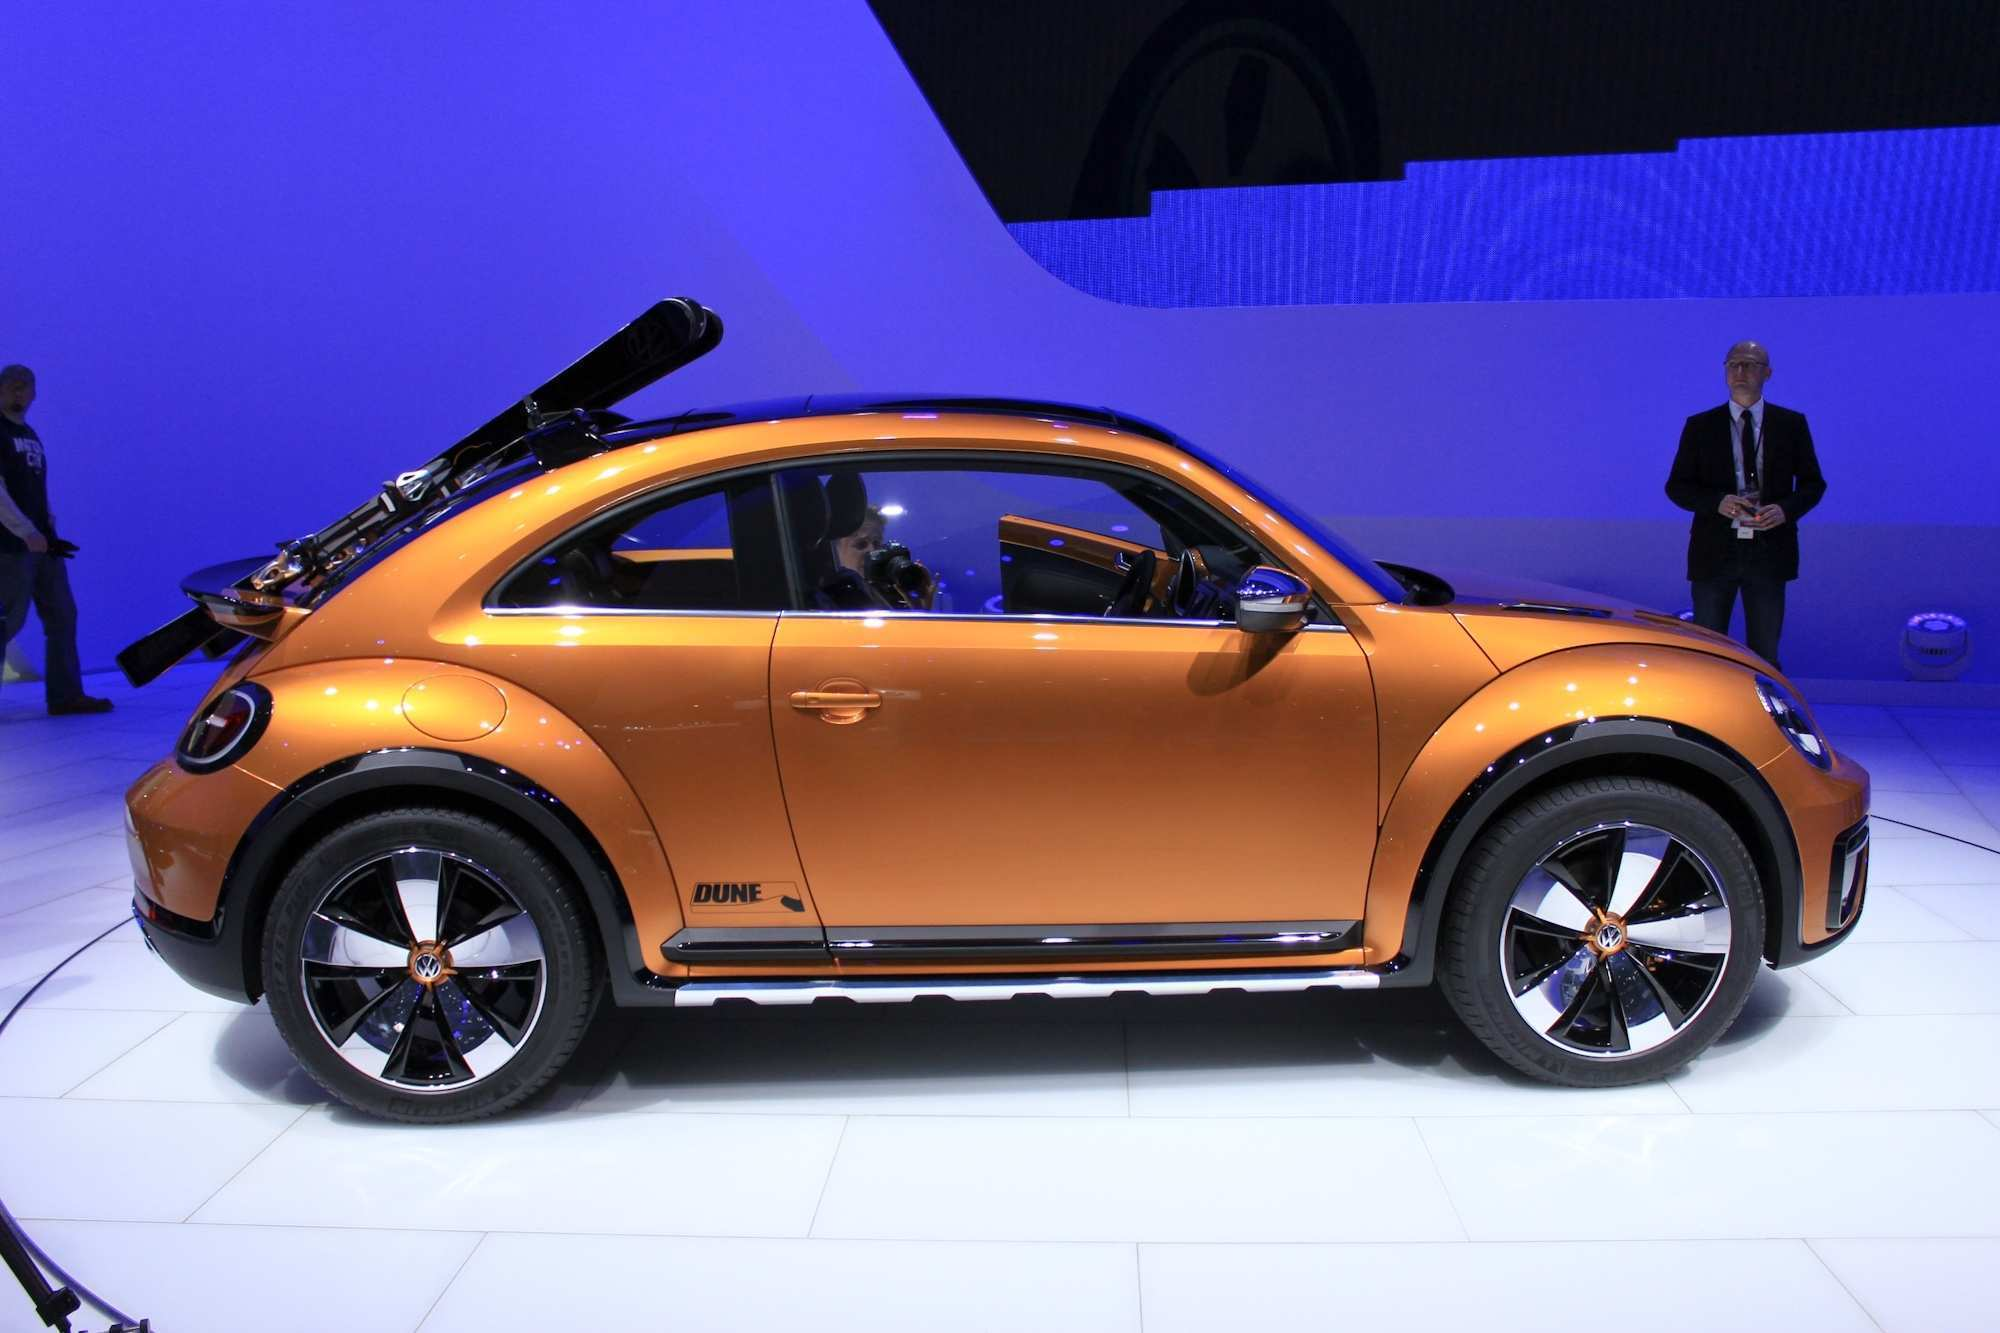 76 All New 2019 Volkswagen Beetle Dune Exterior And Interior